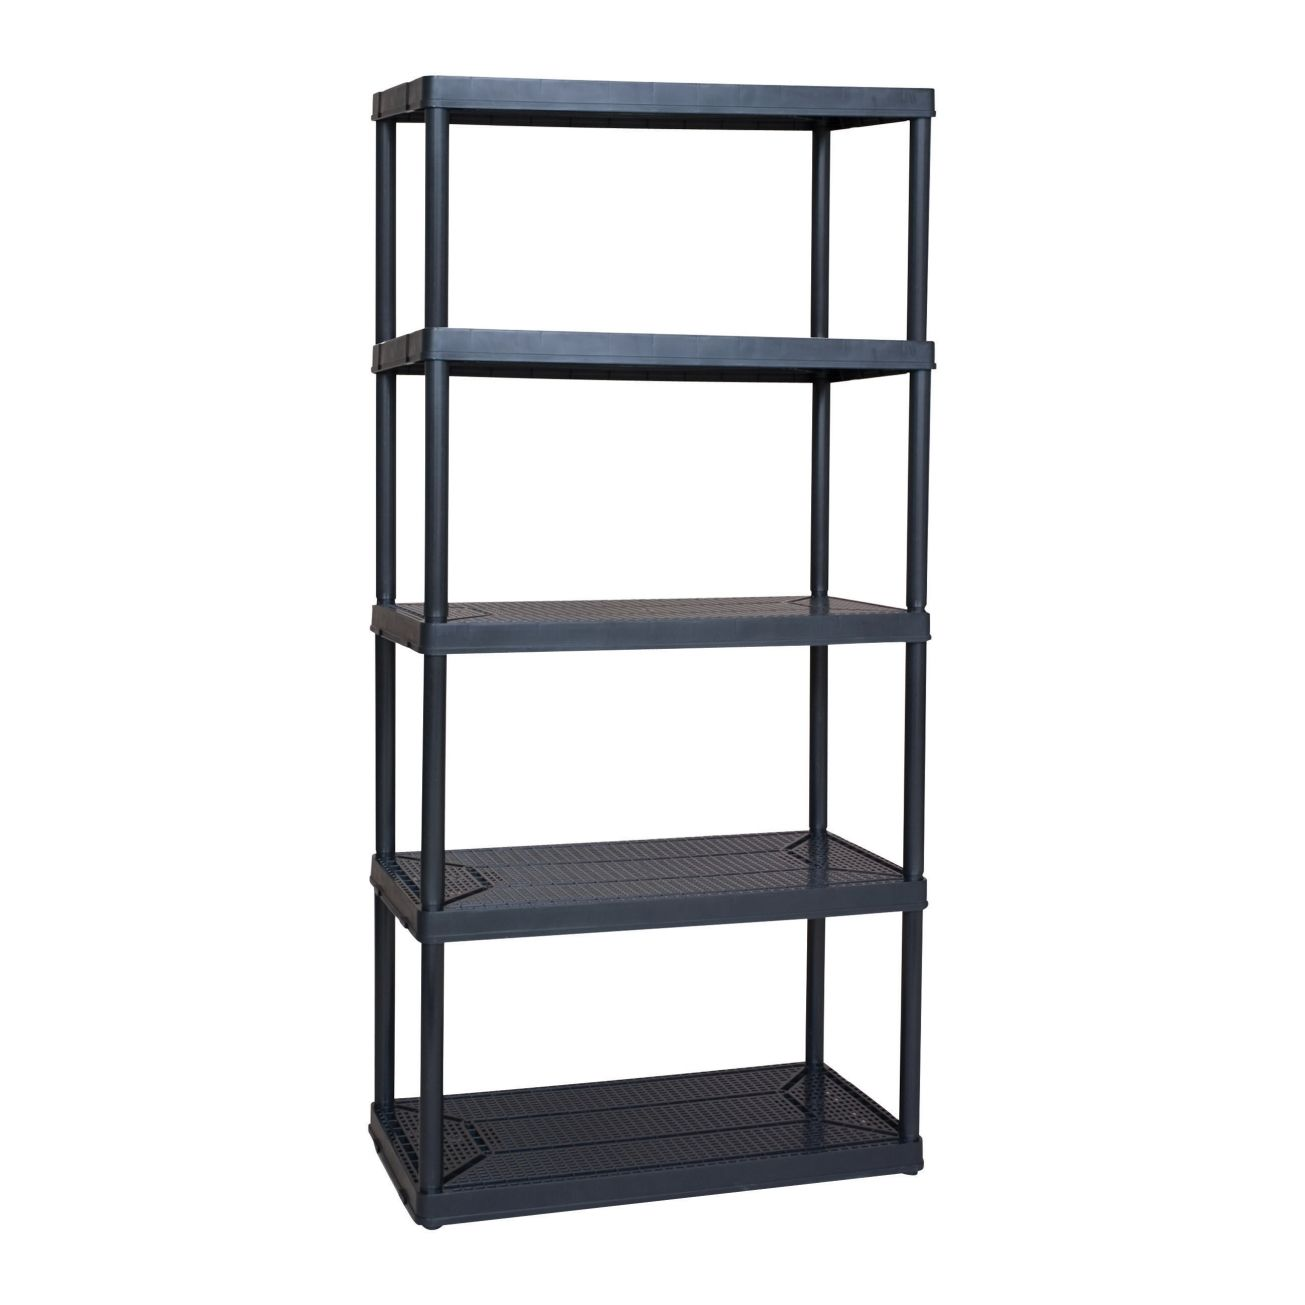 MaxIt 5 Tier Ventilated Plastic Shelving 18in D x 36in W x 72in H (91005-20) - Free Standing Shelving Units - Ace Hardware 34.99 (1/8/2013)  sc 1 st  Pinterest & MaxIt 5 Tier Ventilated Plastic Shelving 18in D x 36in W x 72in H ...